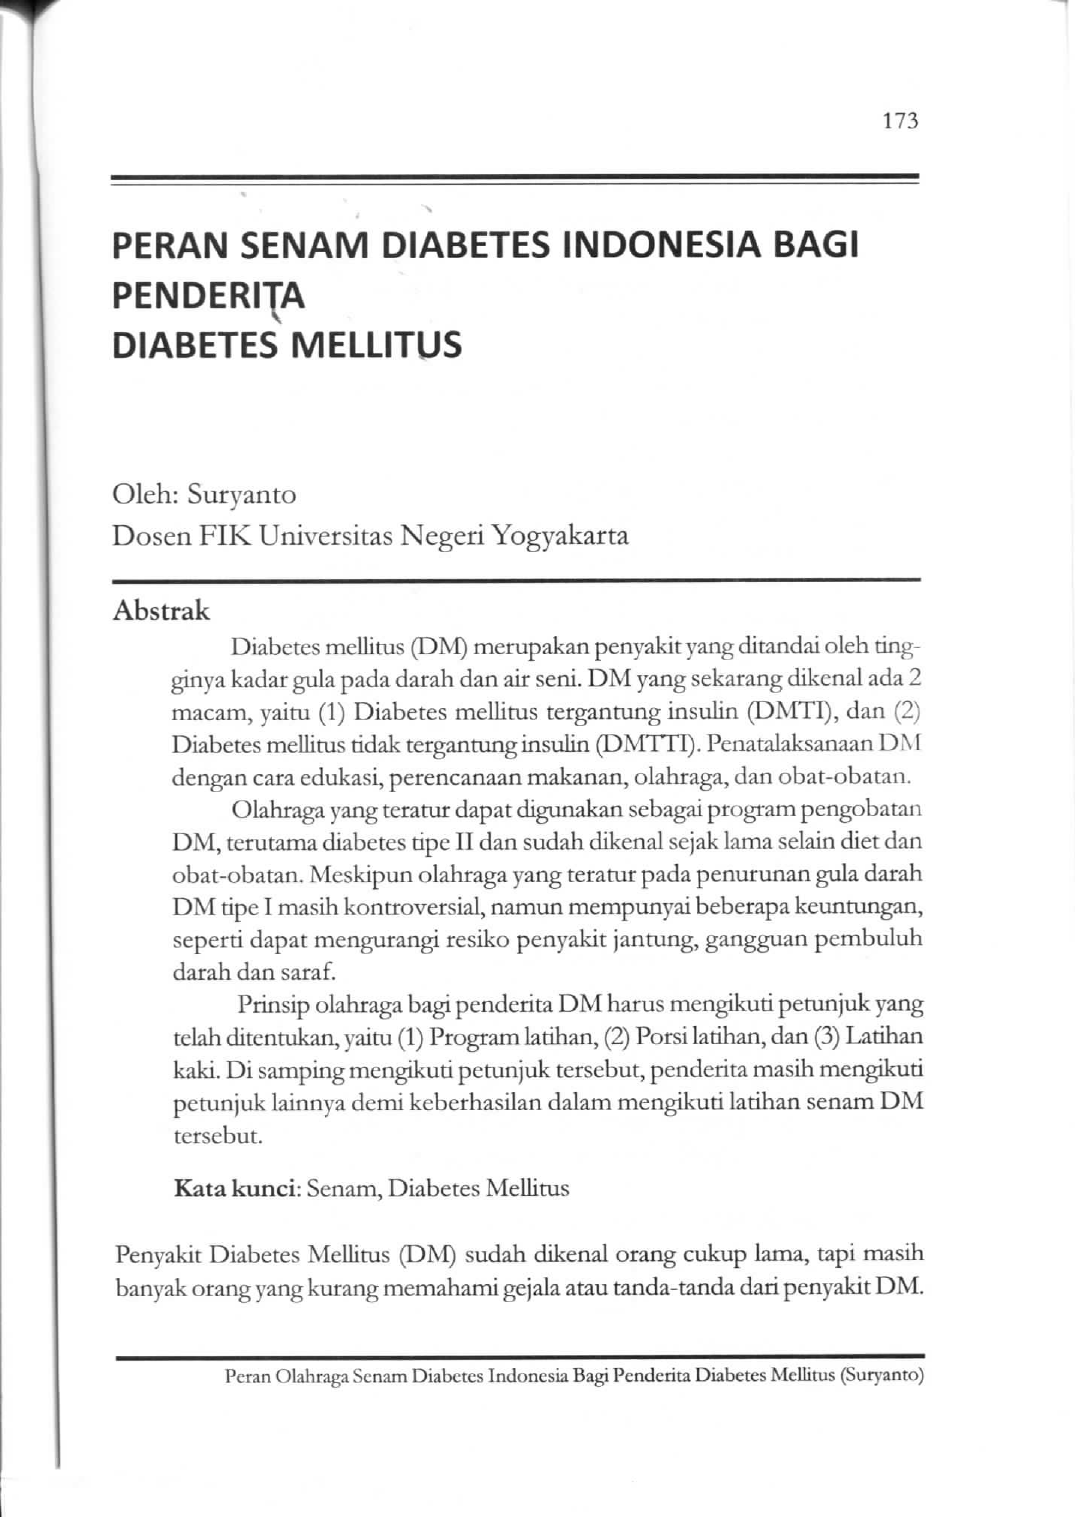 senam diabetes indonesia seri 4 persatuan diabetes indonesia